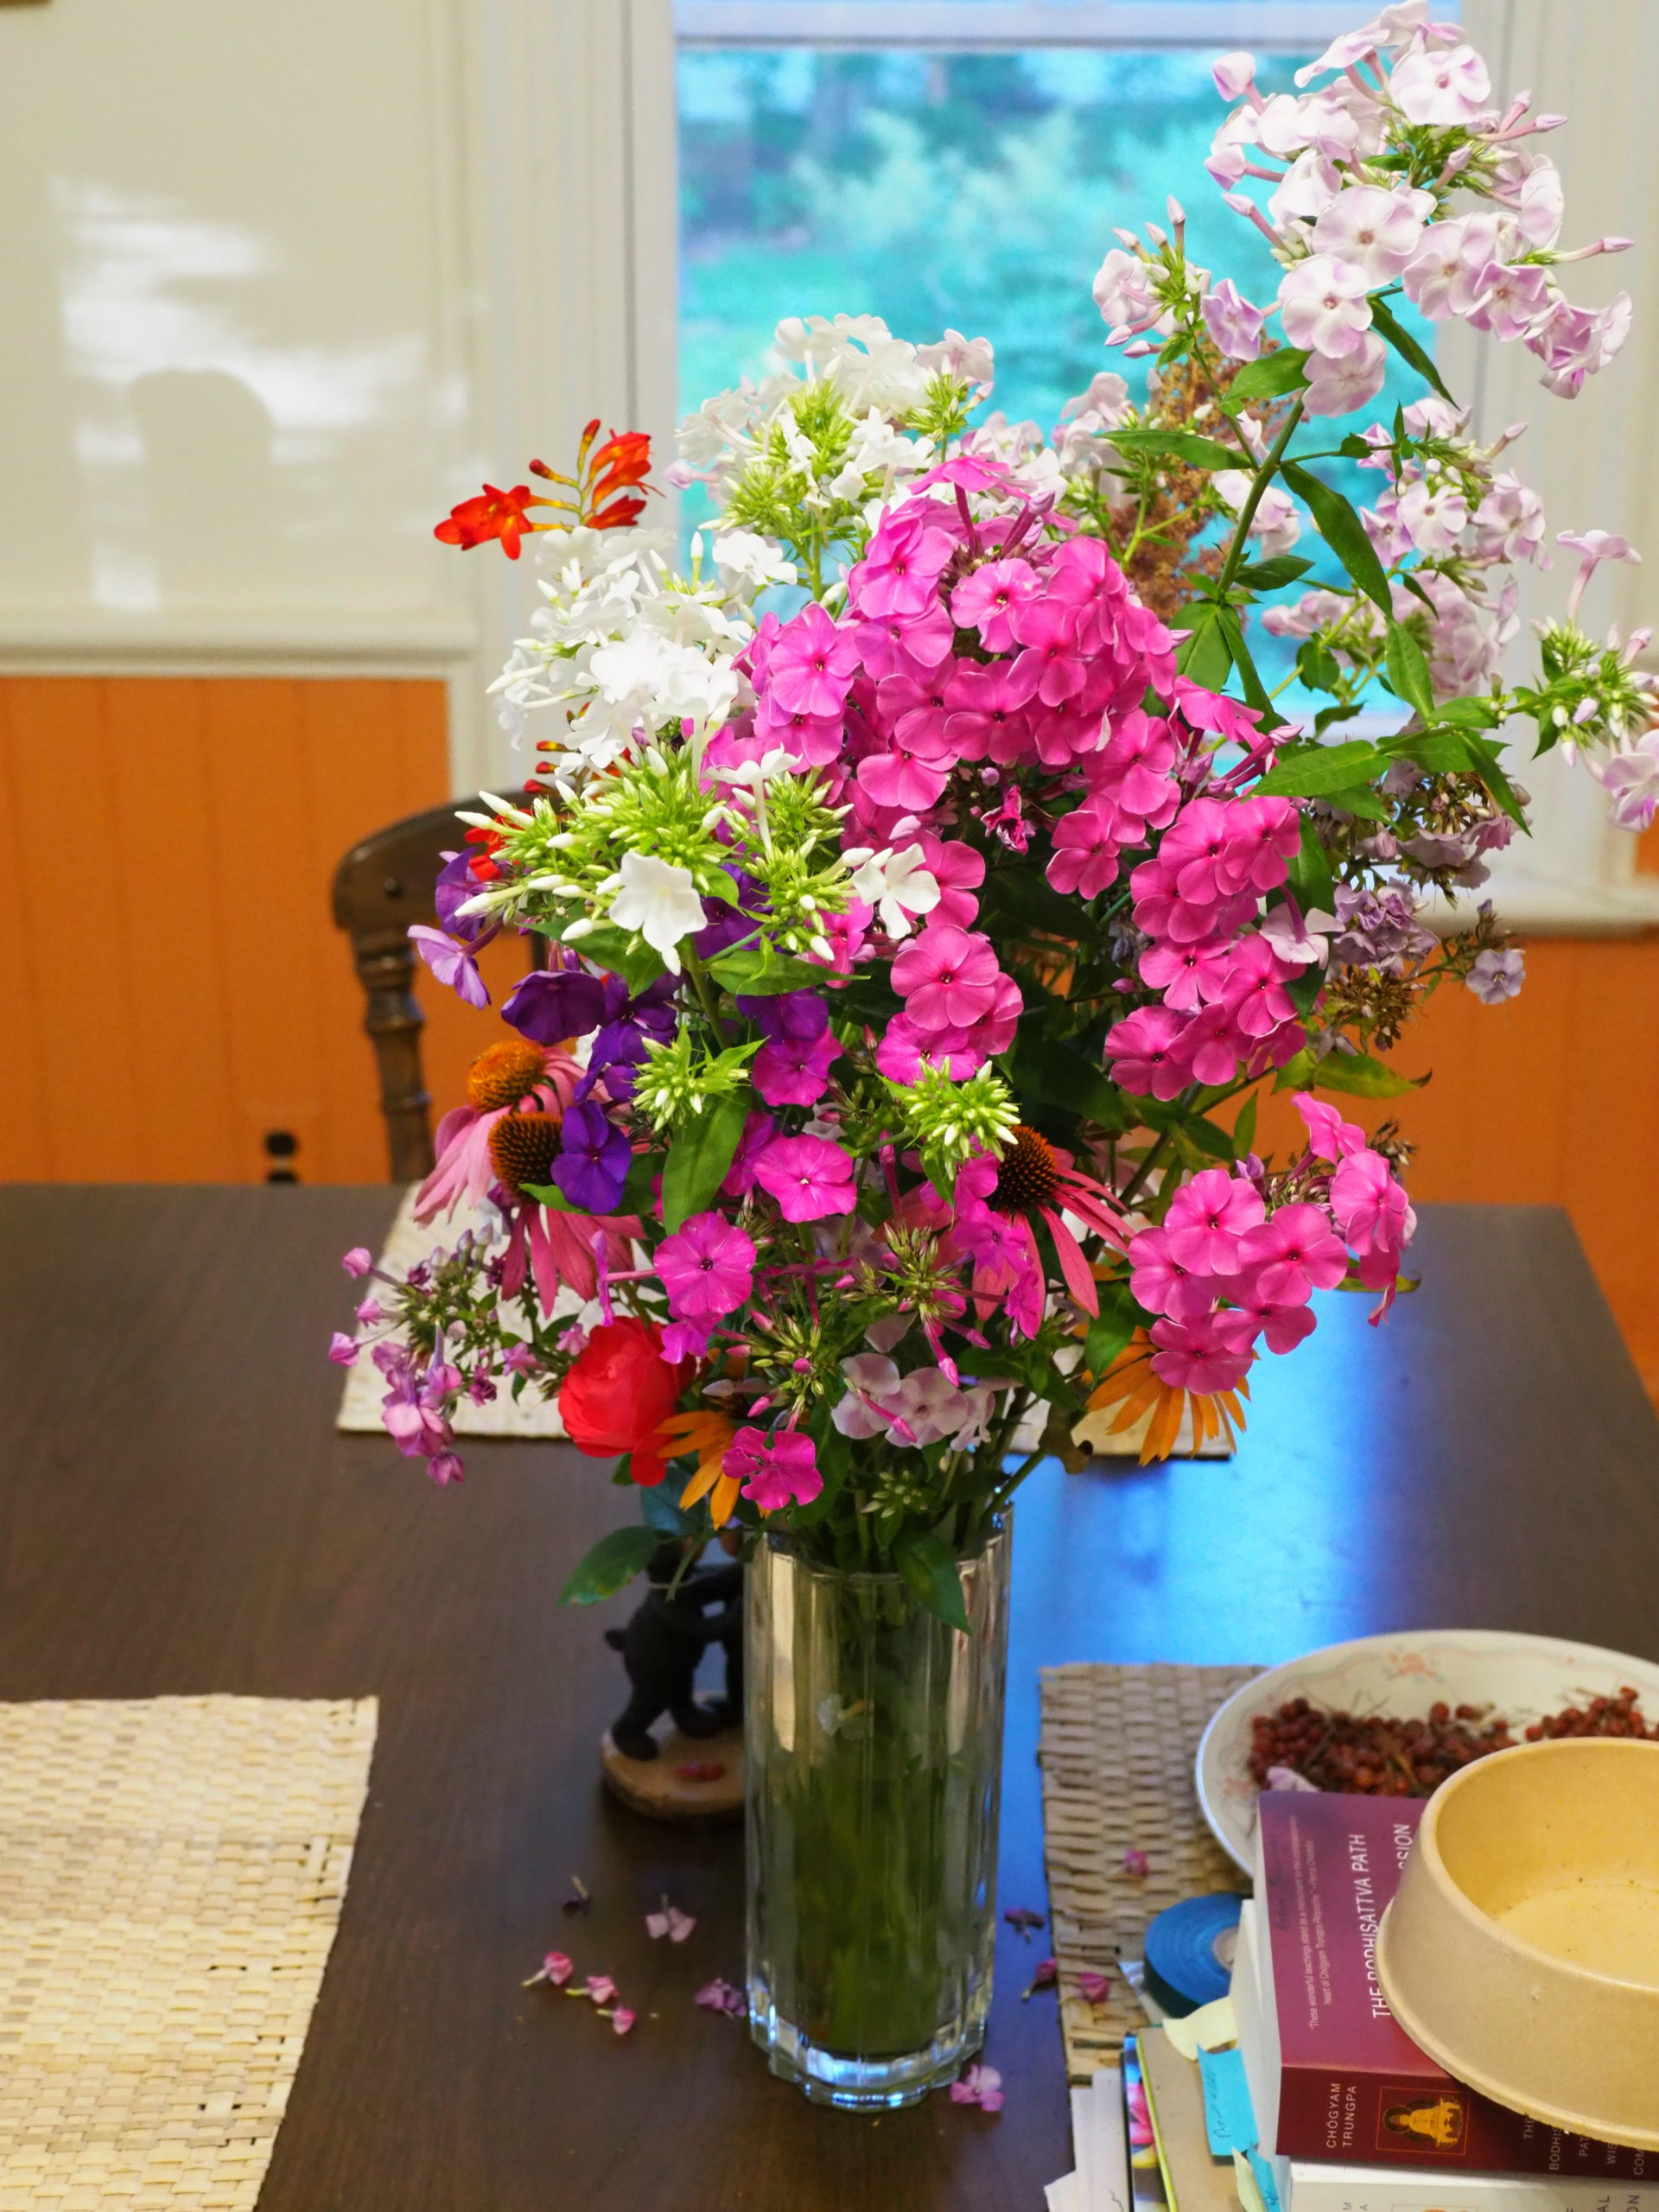 Cut flowers are always on the Hampton Gardener's kitchen table from April through November. This August vase contains six varieties of tall garden Phlox (Phlox paniculate) with a stem of Crocosmia and a few brown-eyed daisies.